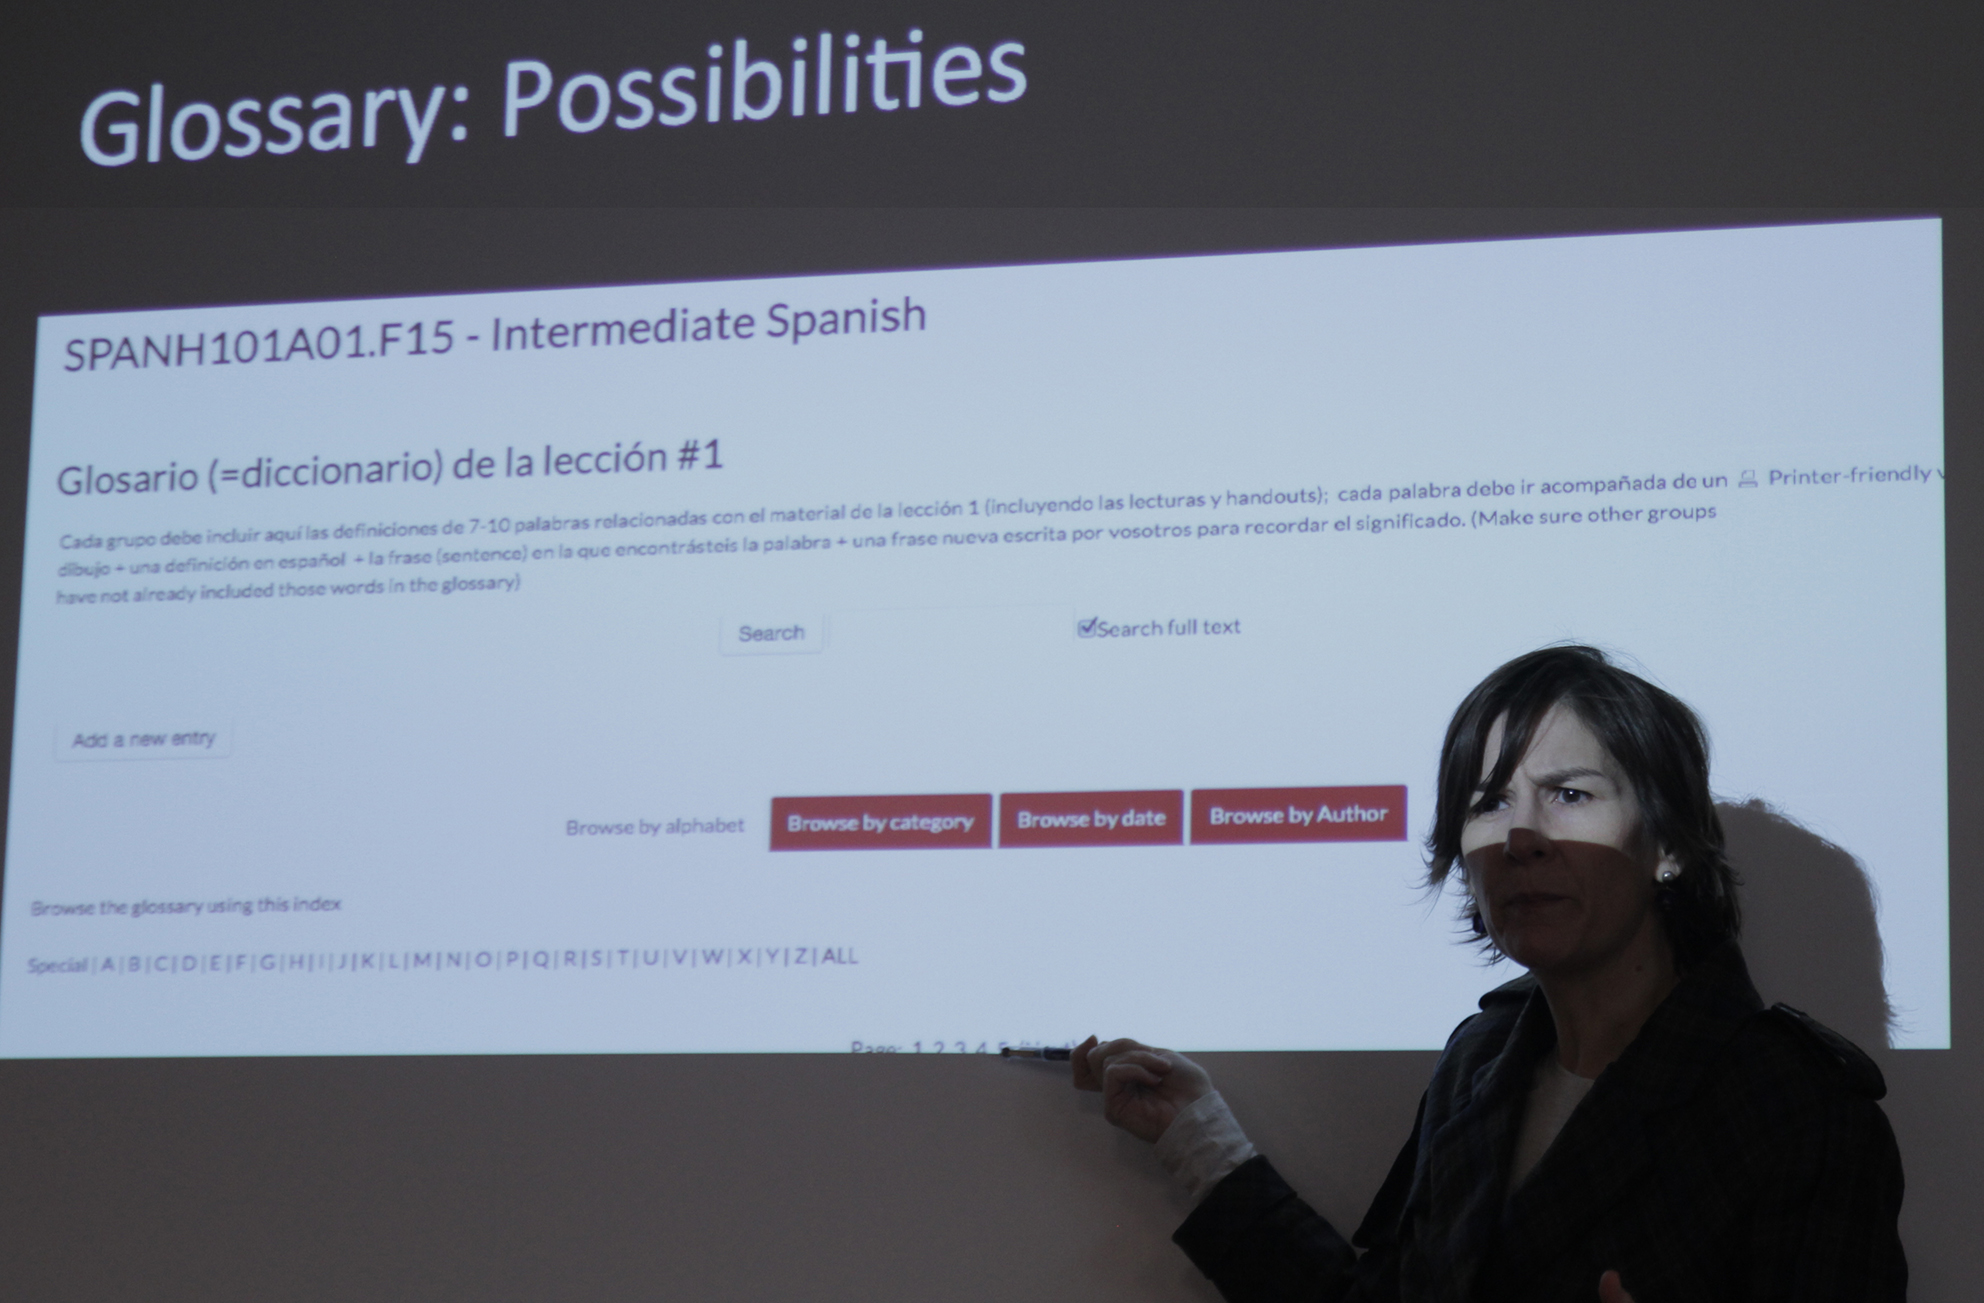 Ana López Sánchez, Asst. Professor of Spanish, describes her students' online glossary project.